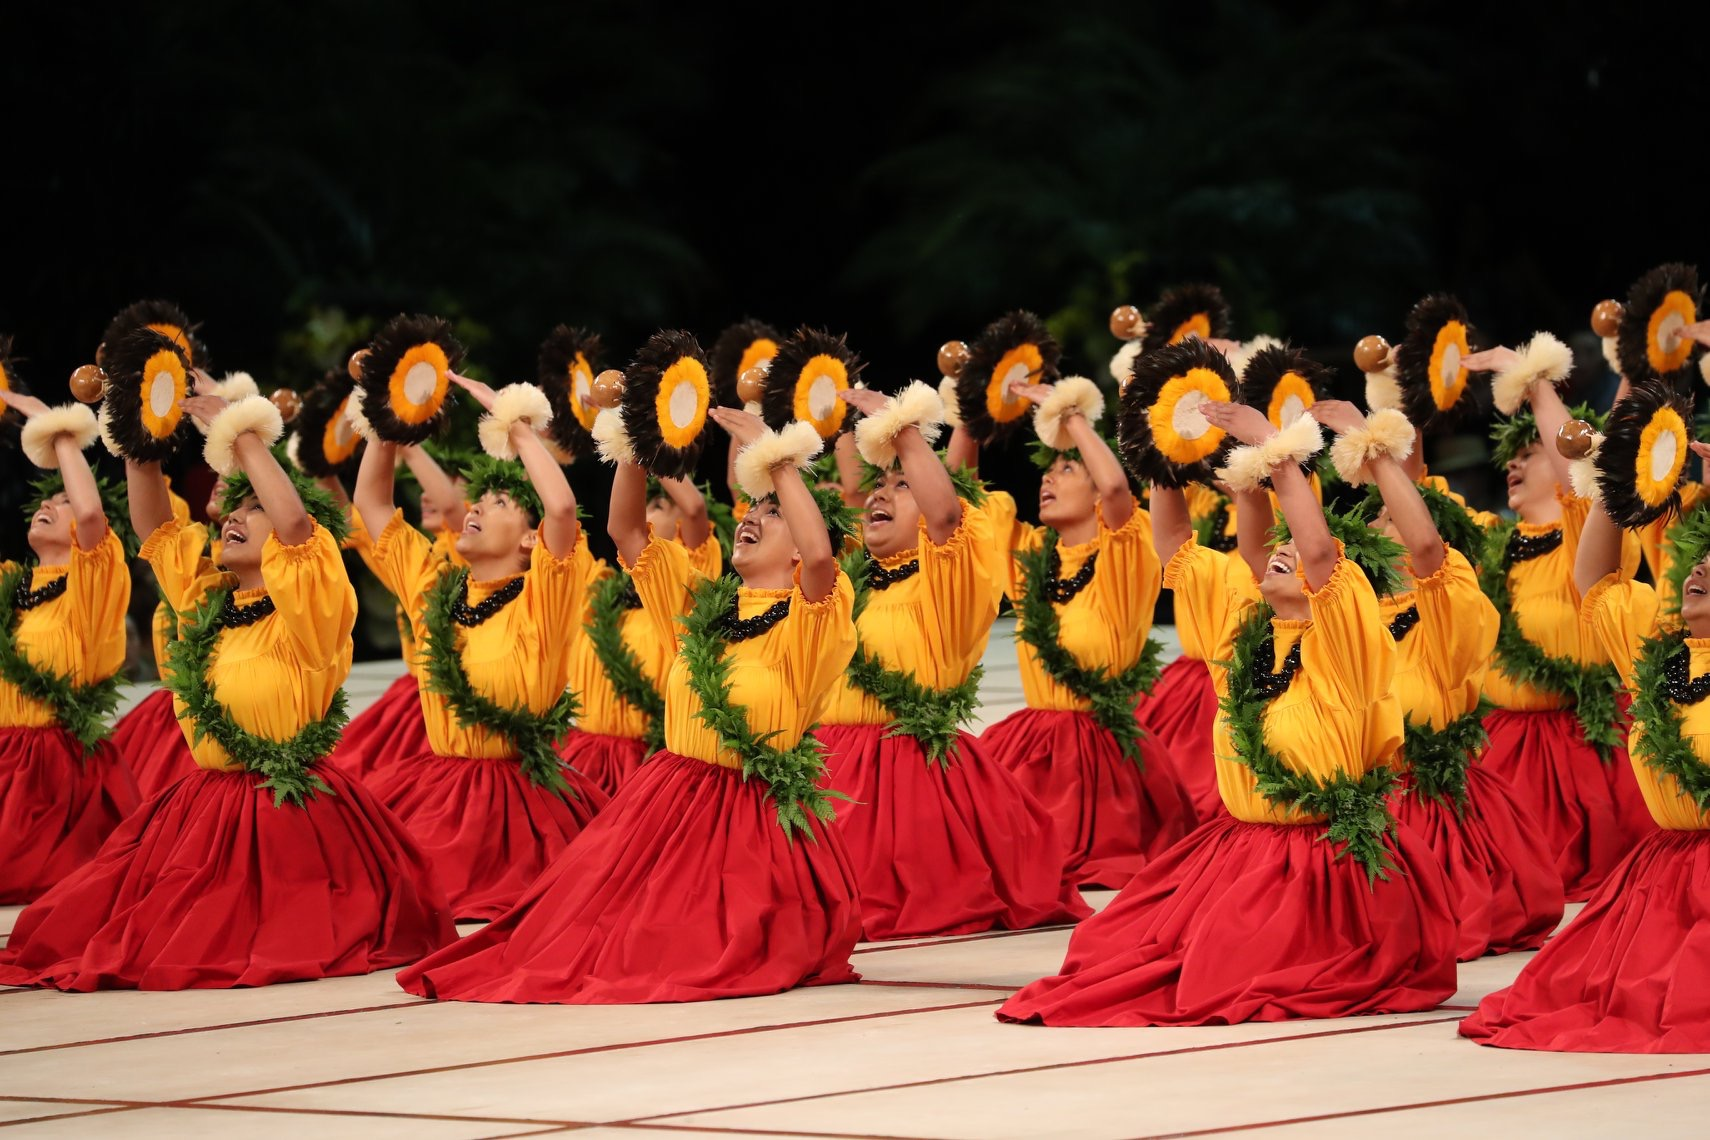 Maui Hālau Celebrates 15 Years of Hula